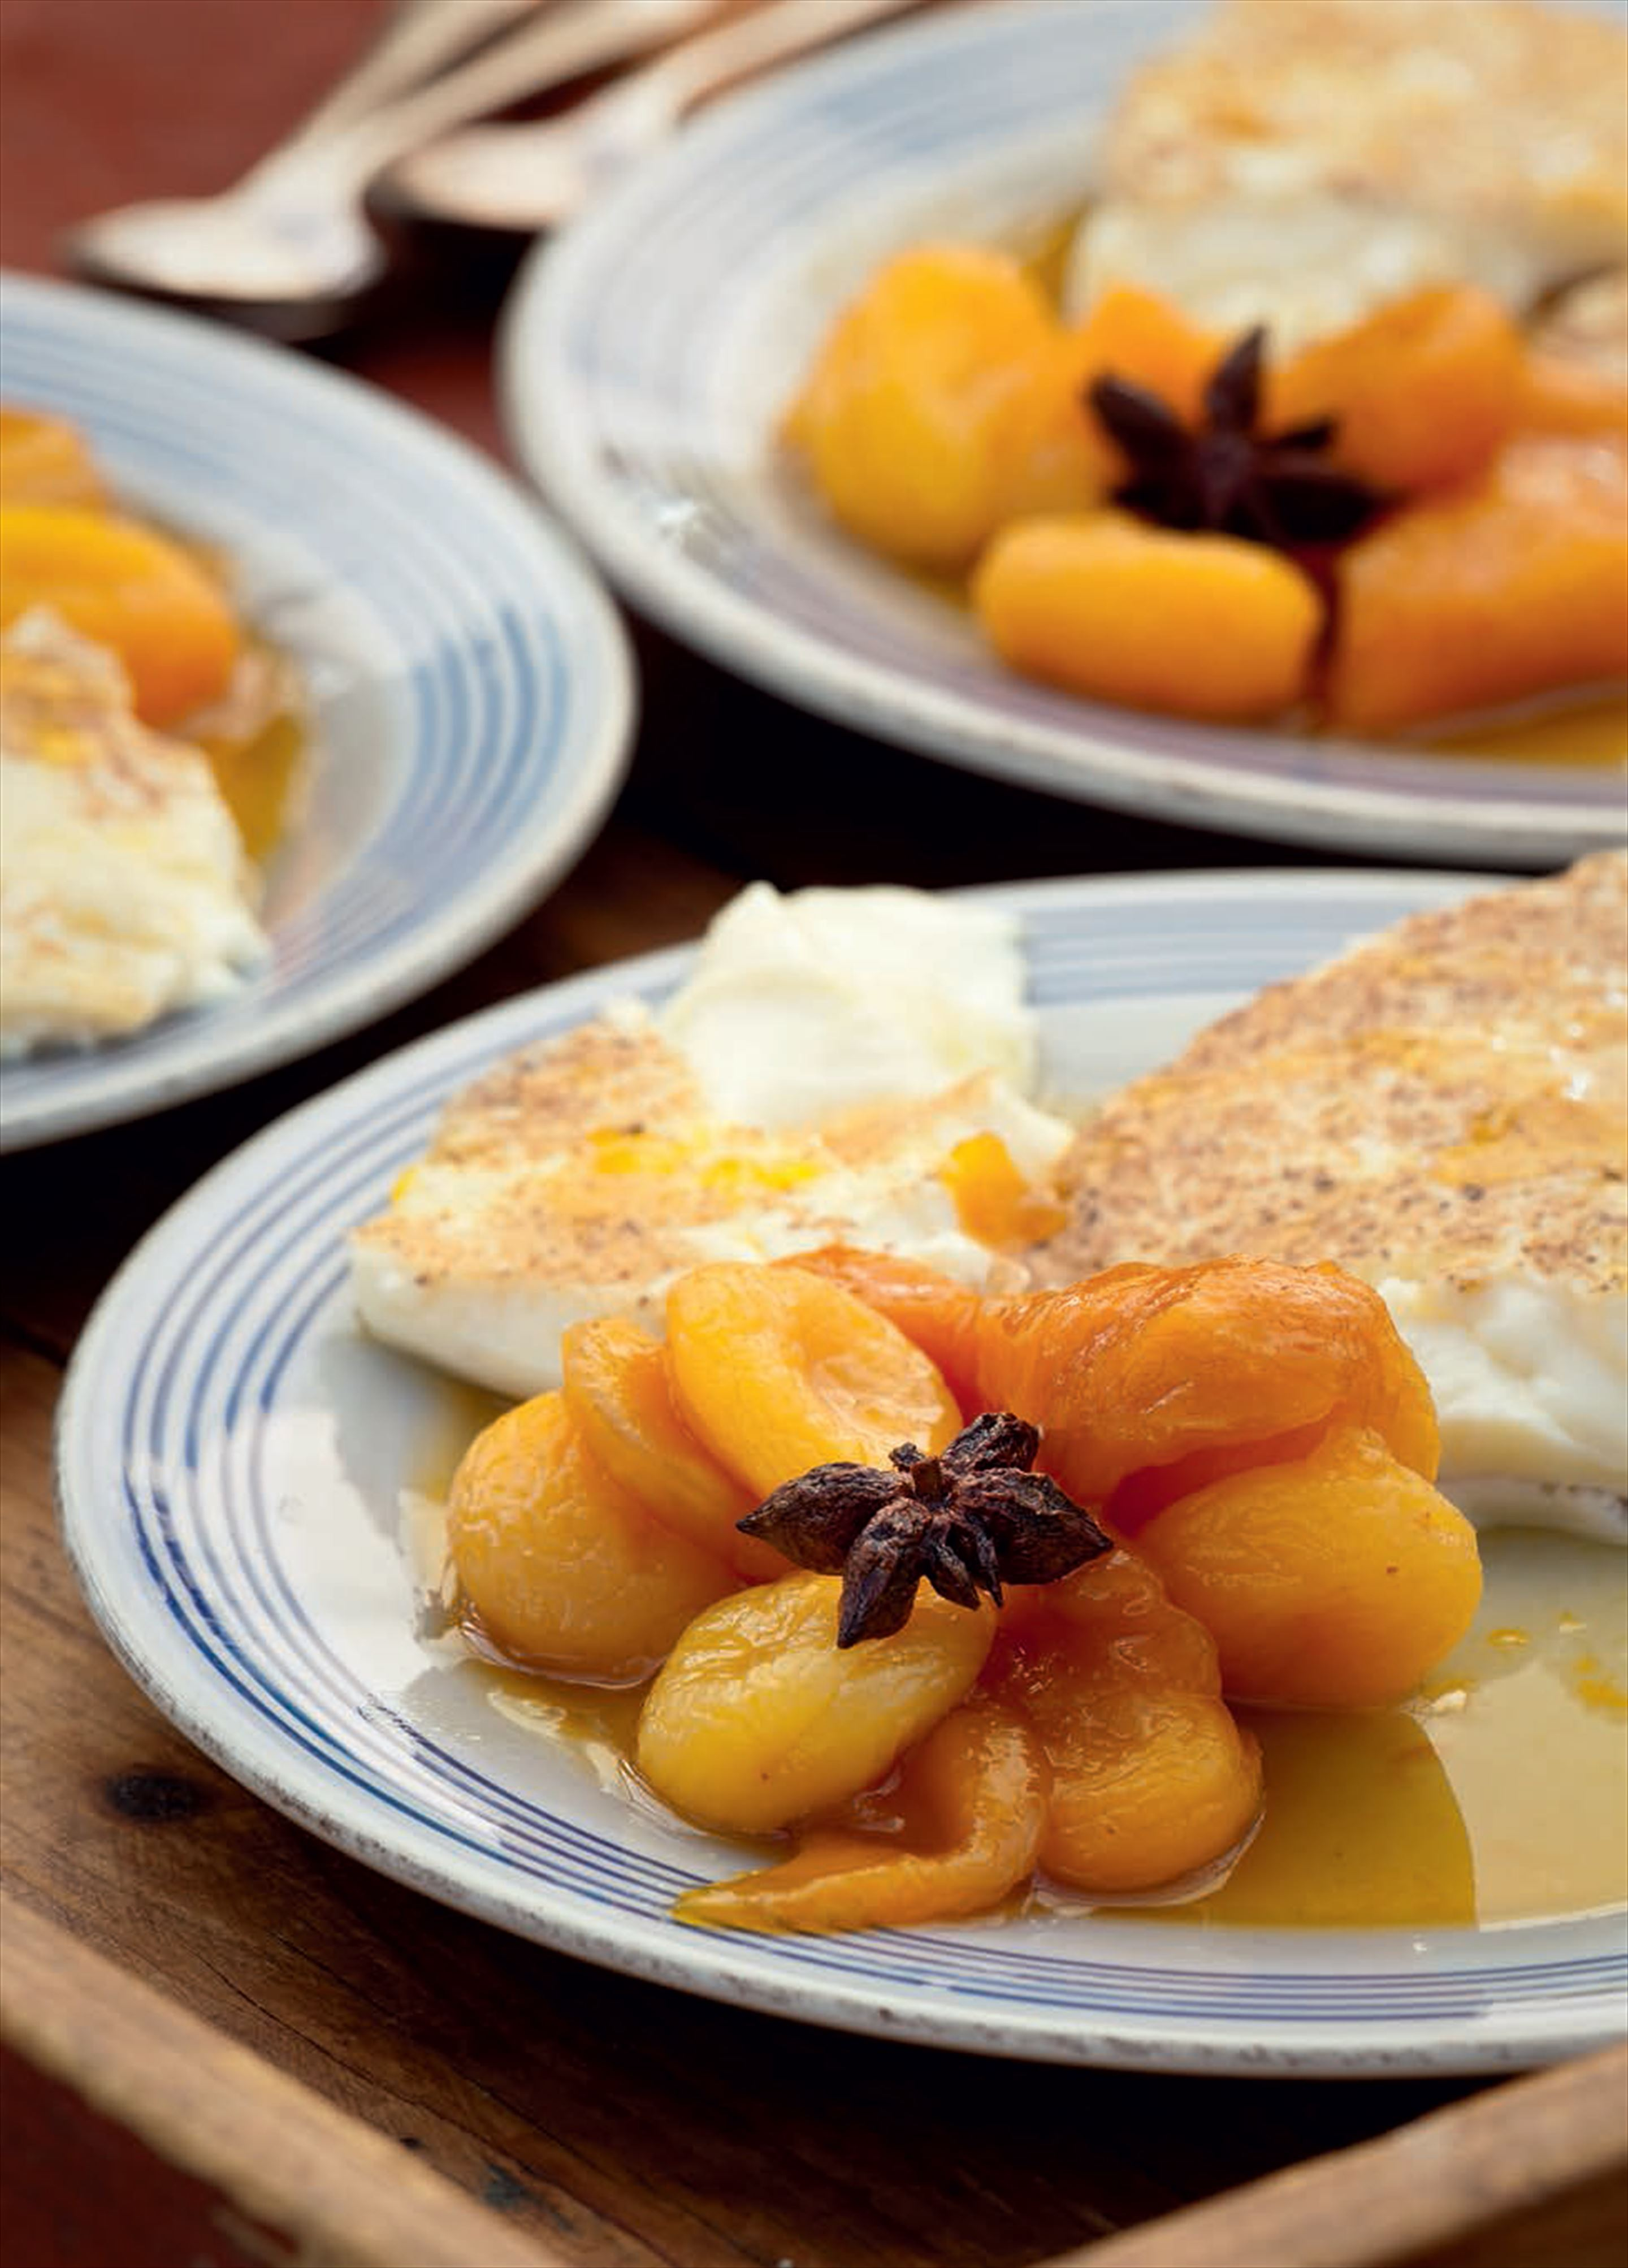 Mango and apricot compote